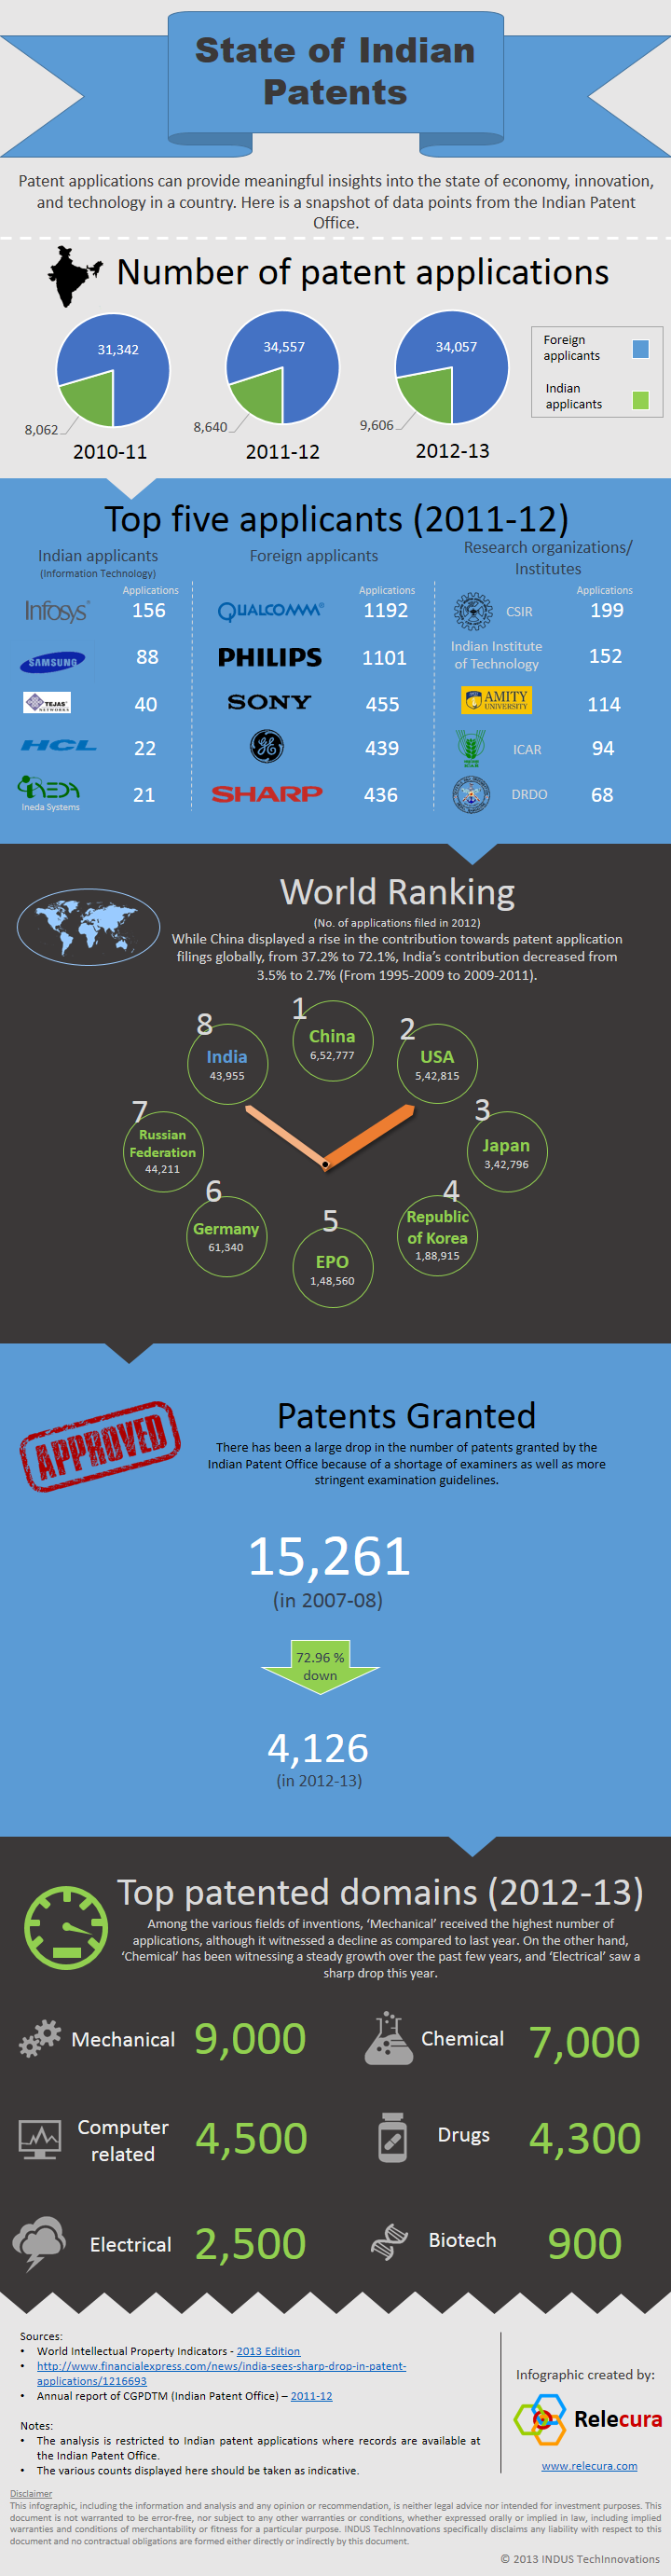 State of Indian Patents